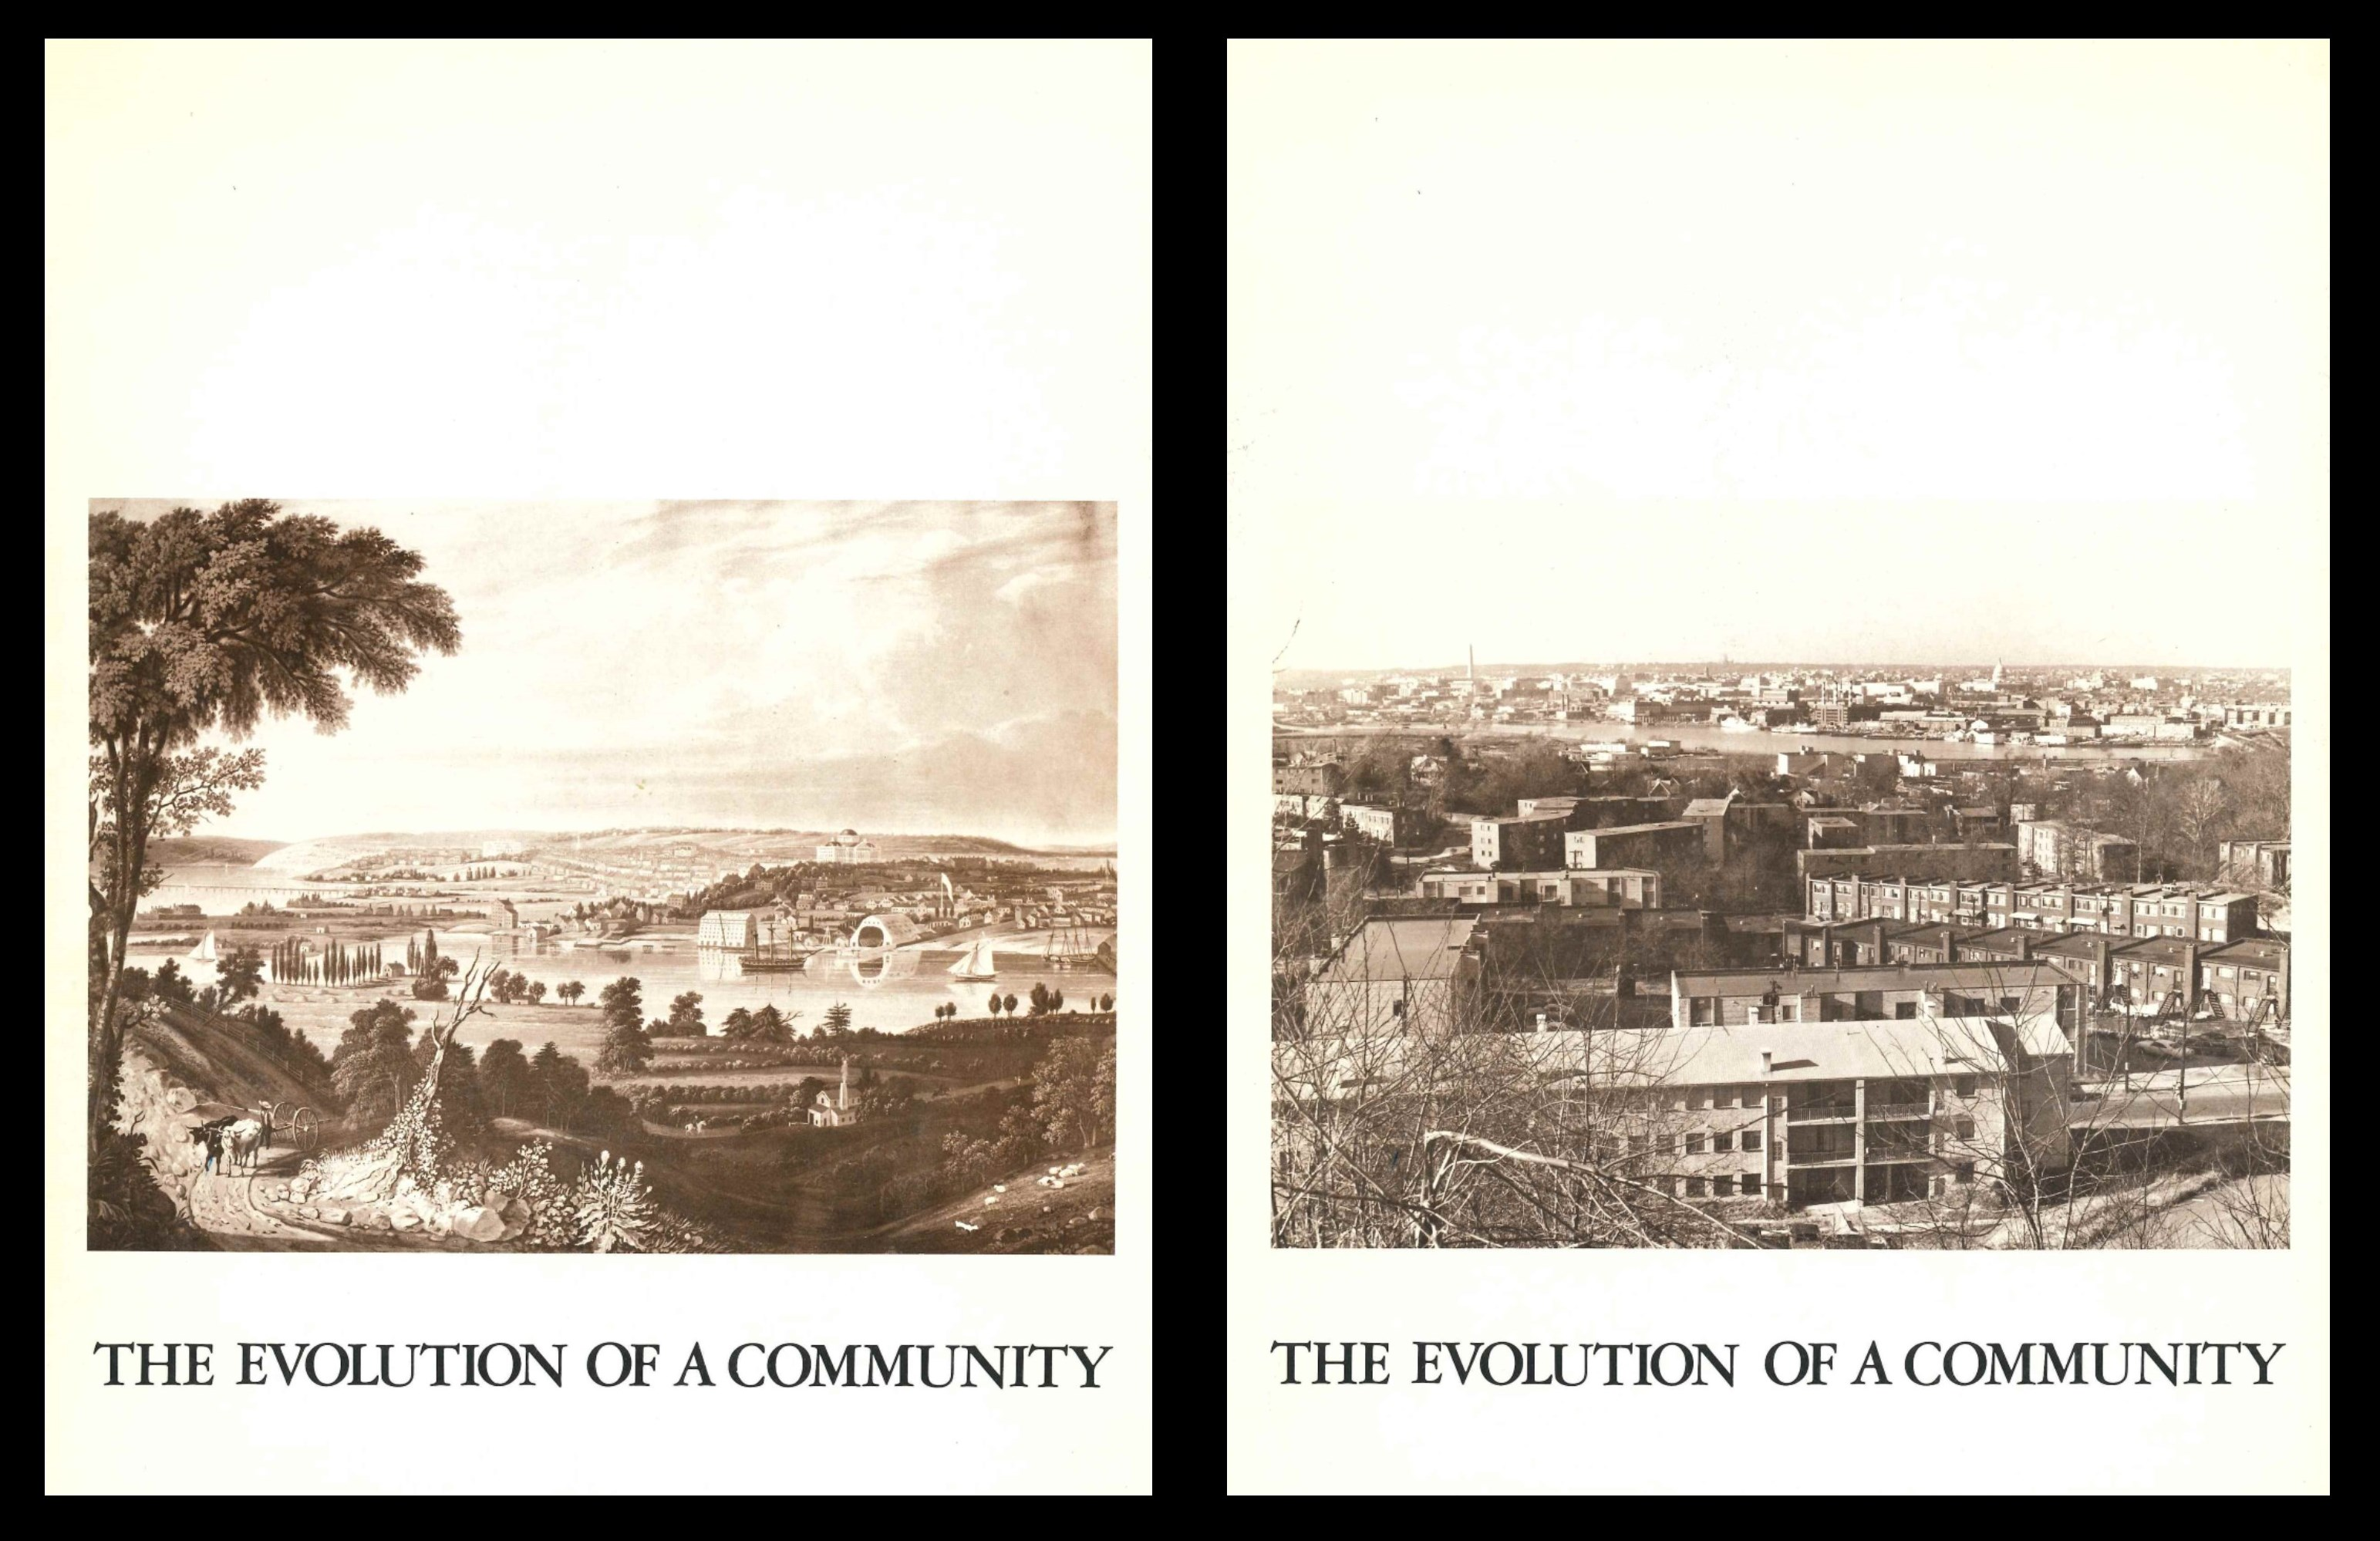 Exhibition brochure - The Evolution of a Community, 1972.